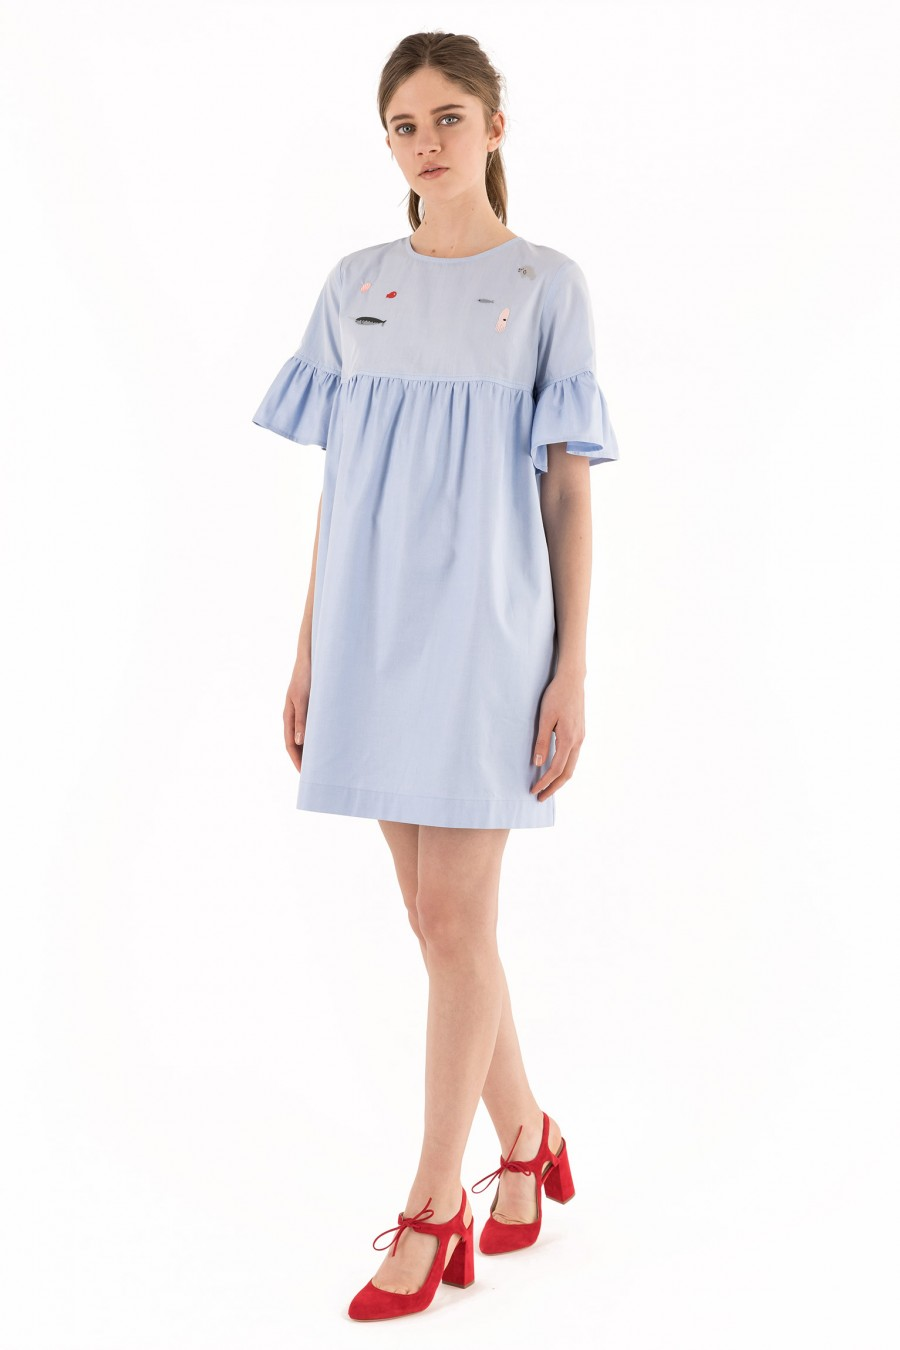 Light blue dress with embroidery